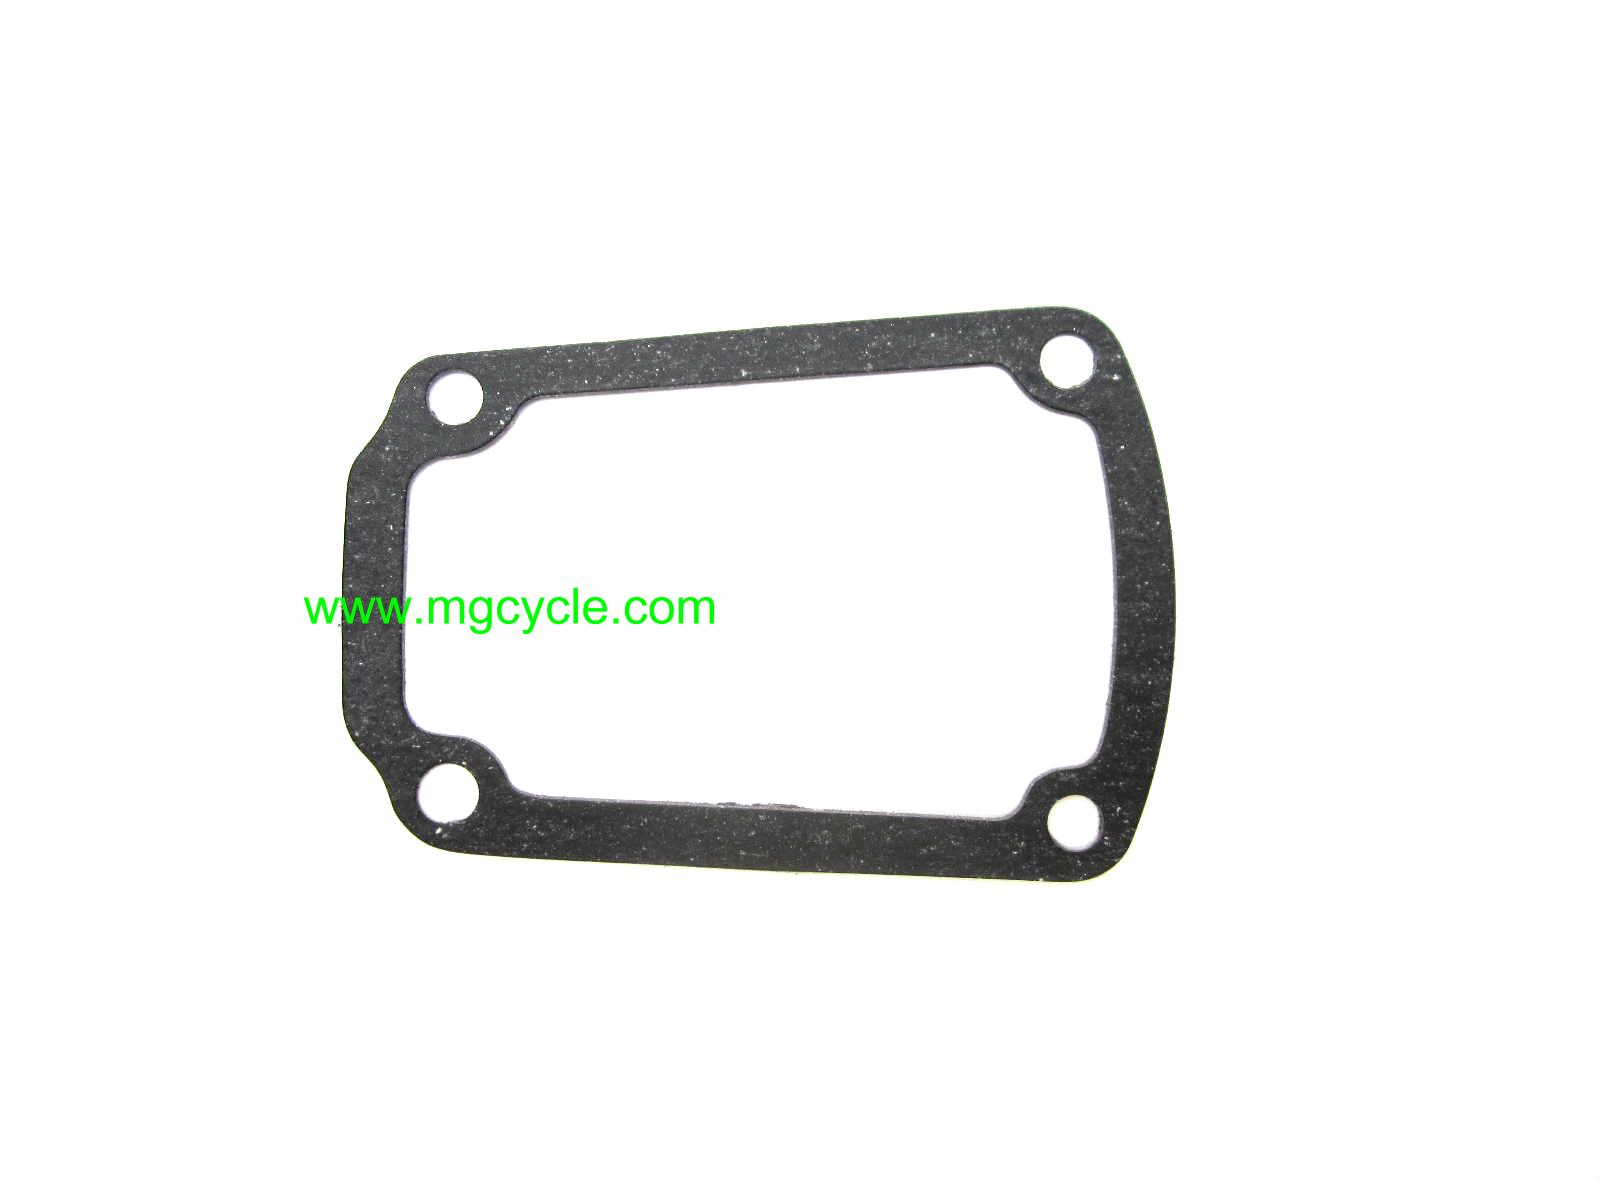 premium quality valve cover gasket for Ducati 2 valve engines